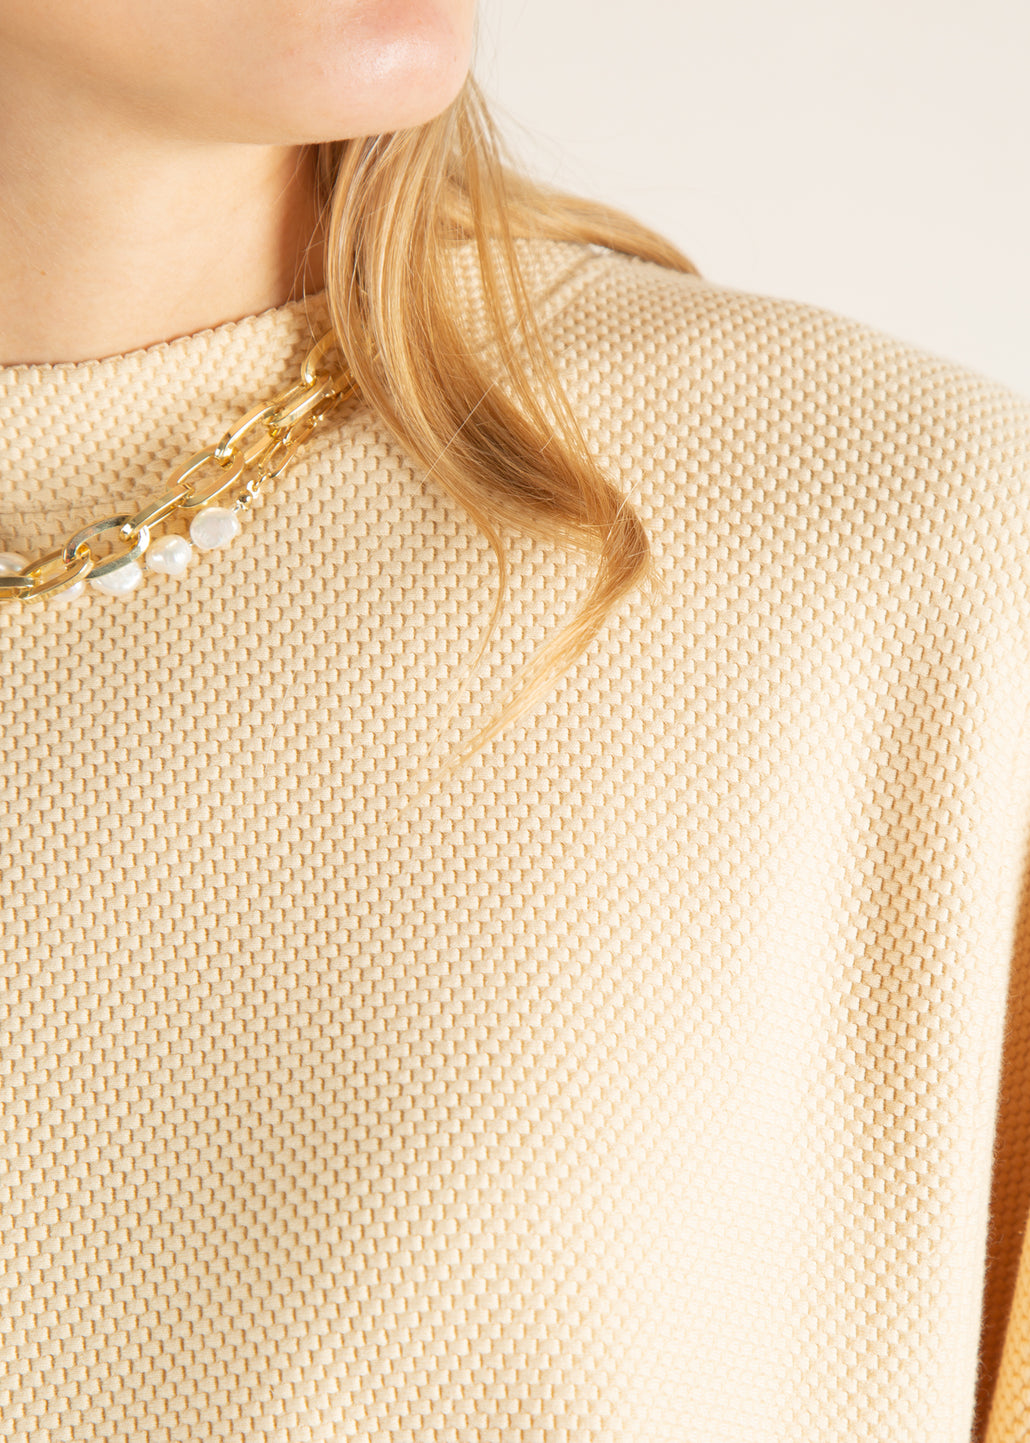 detail wheat sweater